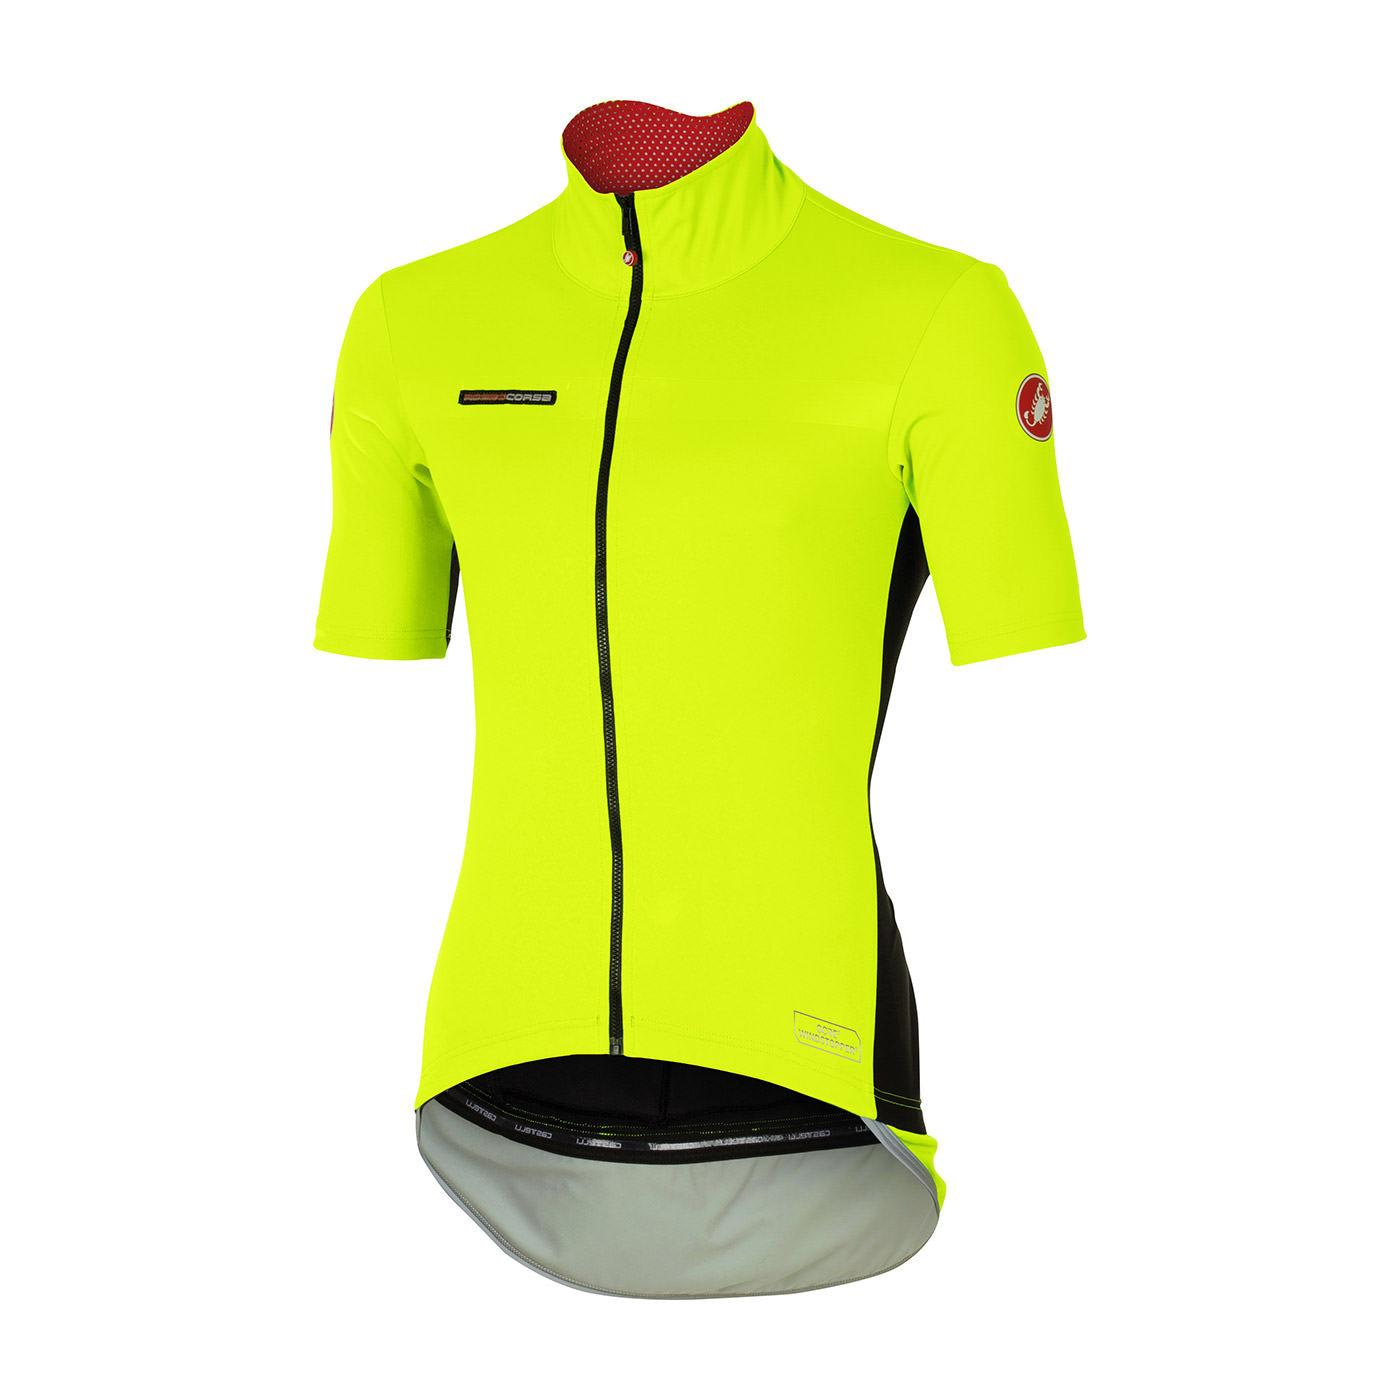 Castelli PERFETTO Light Short Sleeve Windstopper Jersey From Evans Cycles  XL Yellow. About this product. Picture 1 of 2  Picture 2 of 2 5d5d20266